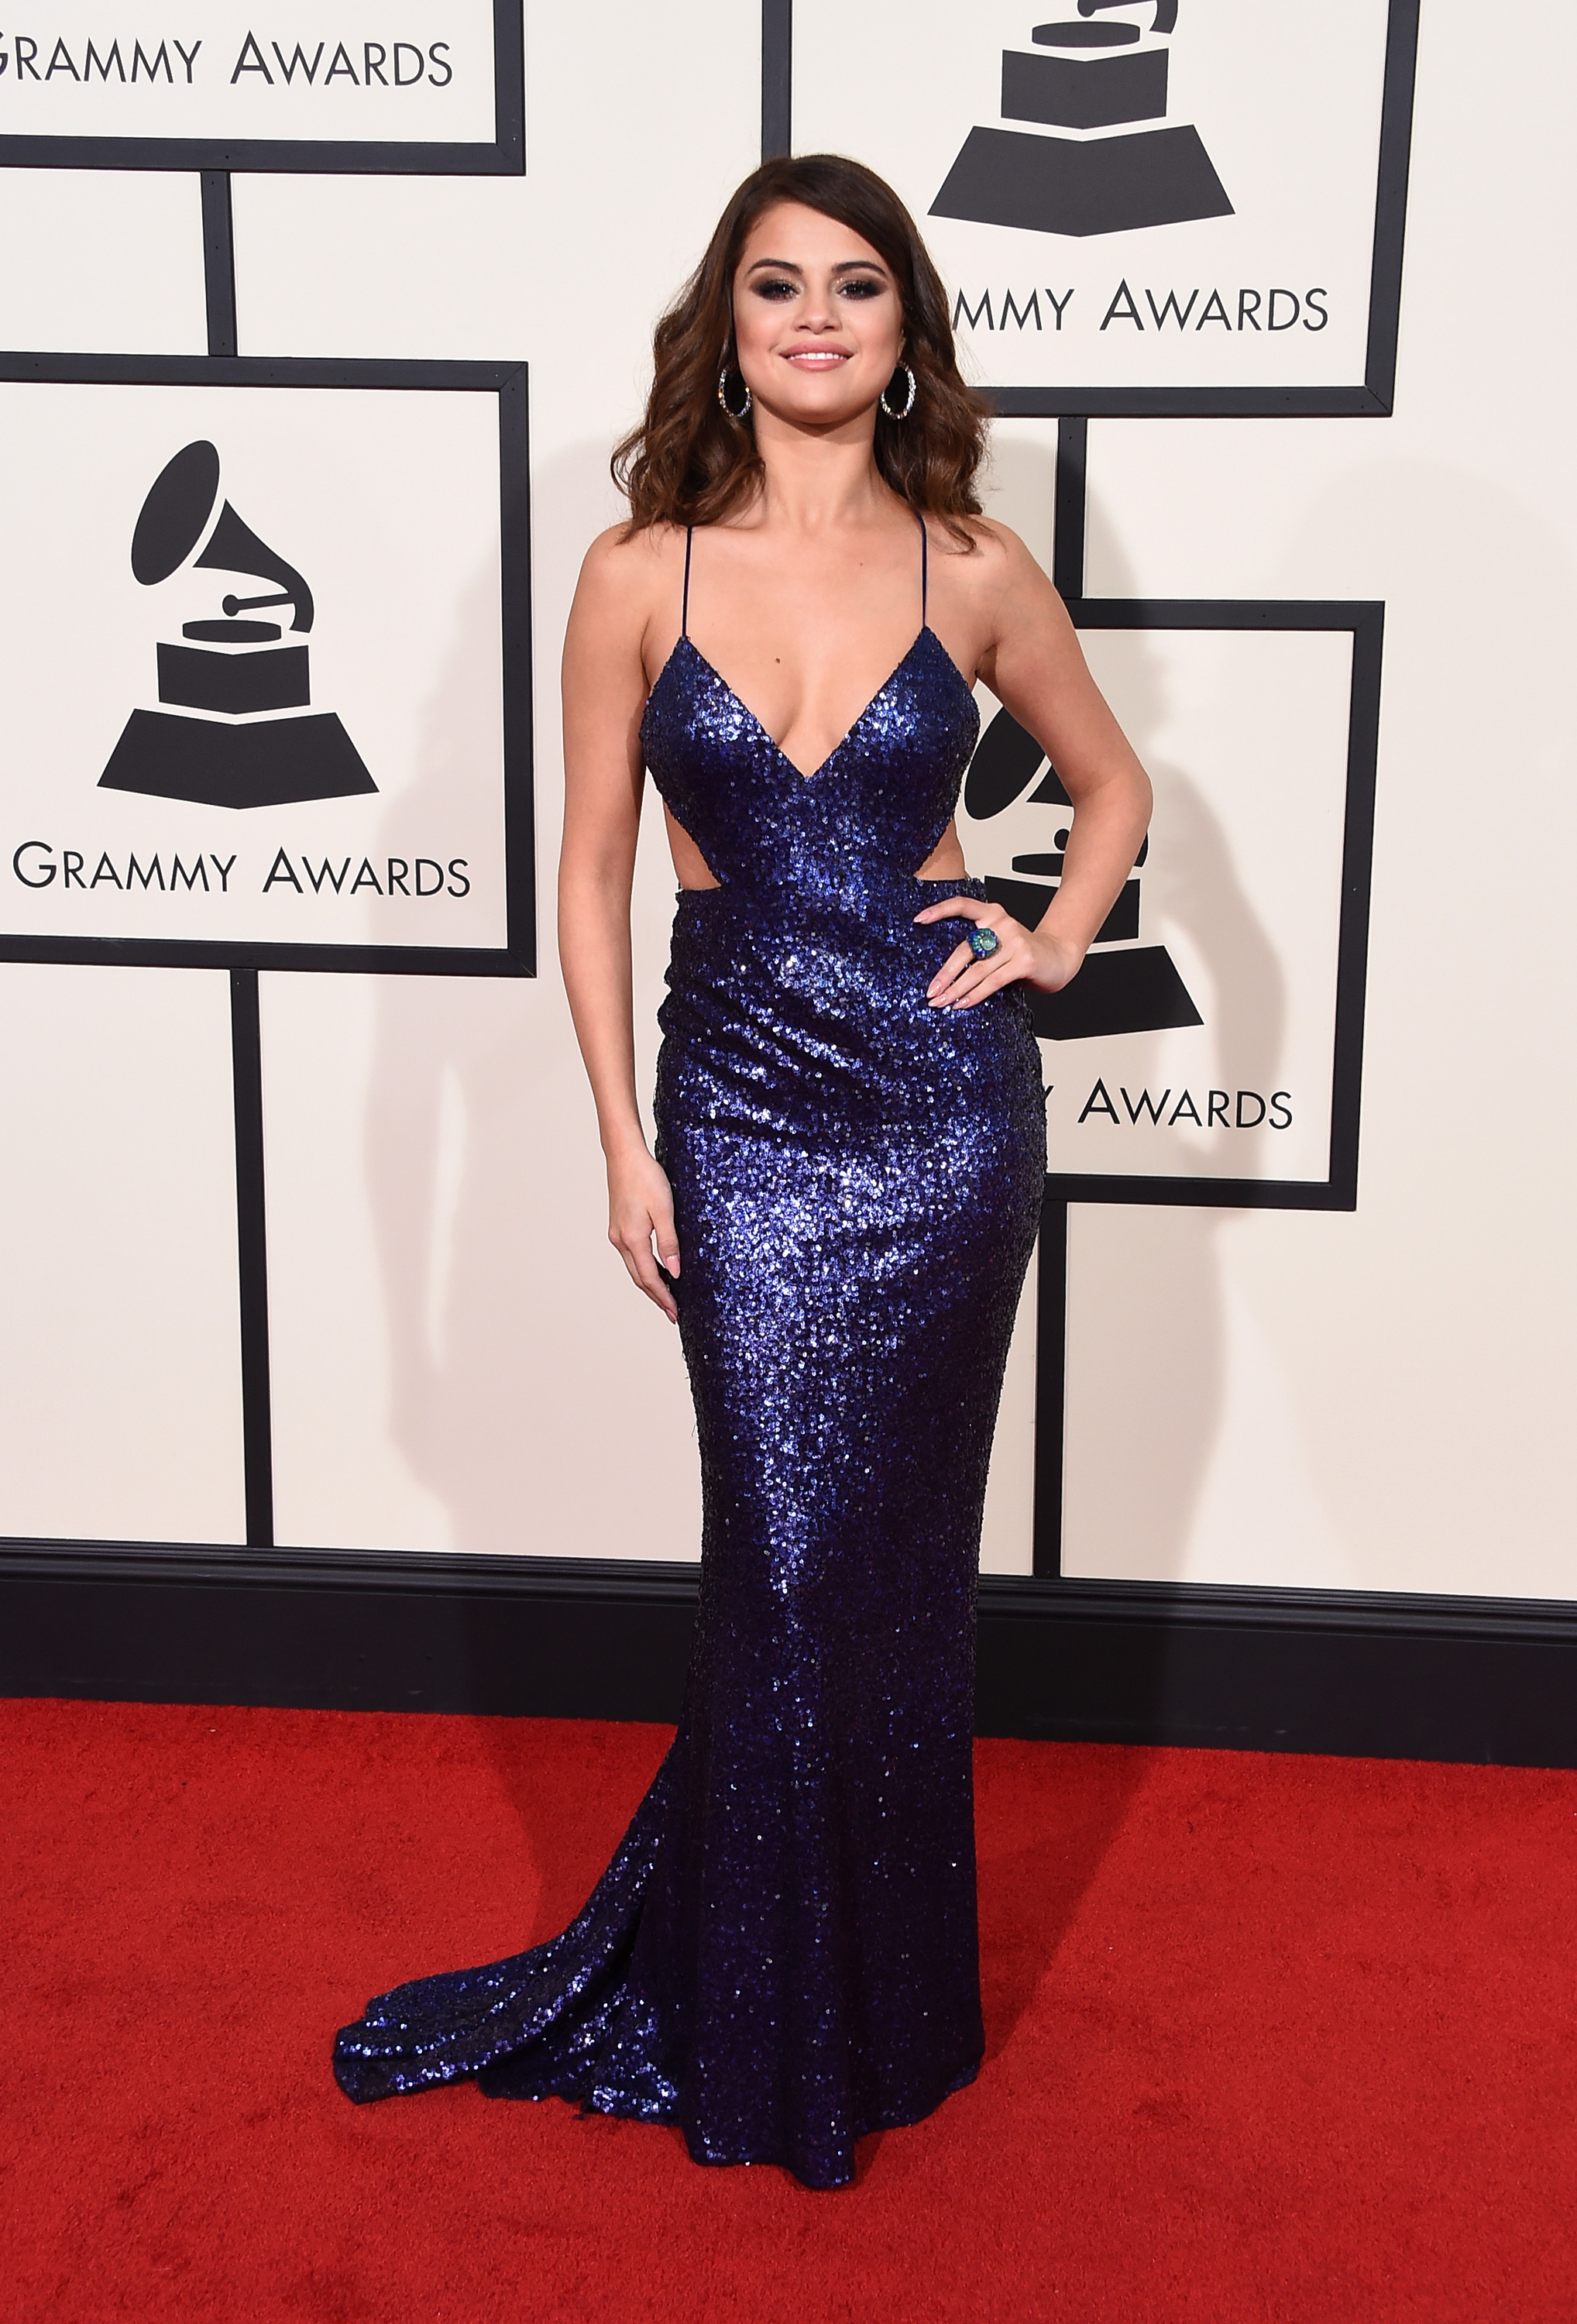 Selena Gomez attends the 58th GRAMMY Awards at Staples Center on Feb. 15, 2016 in Los Angeles.